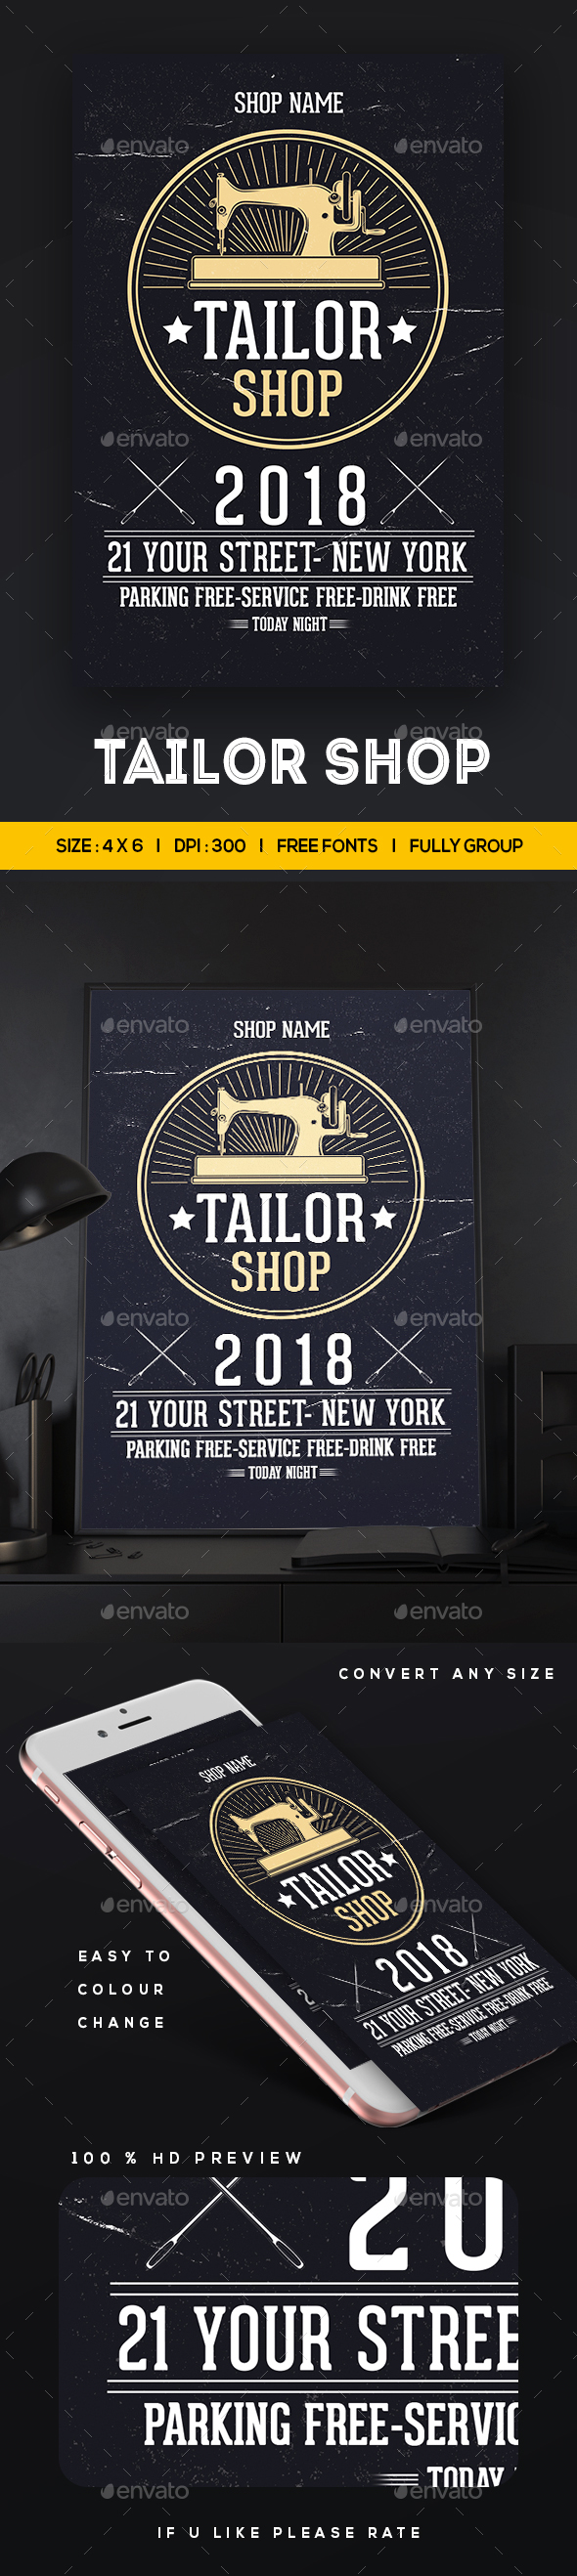 GraphicRiver Tailor Shop Flyer Template 20940457